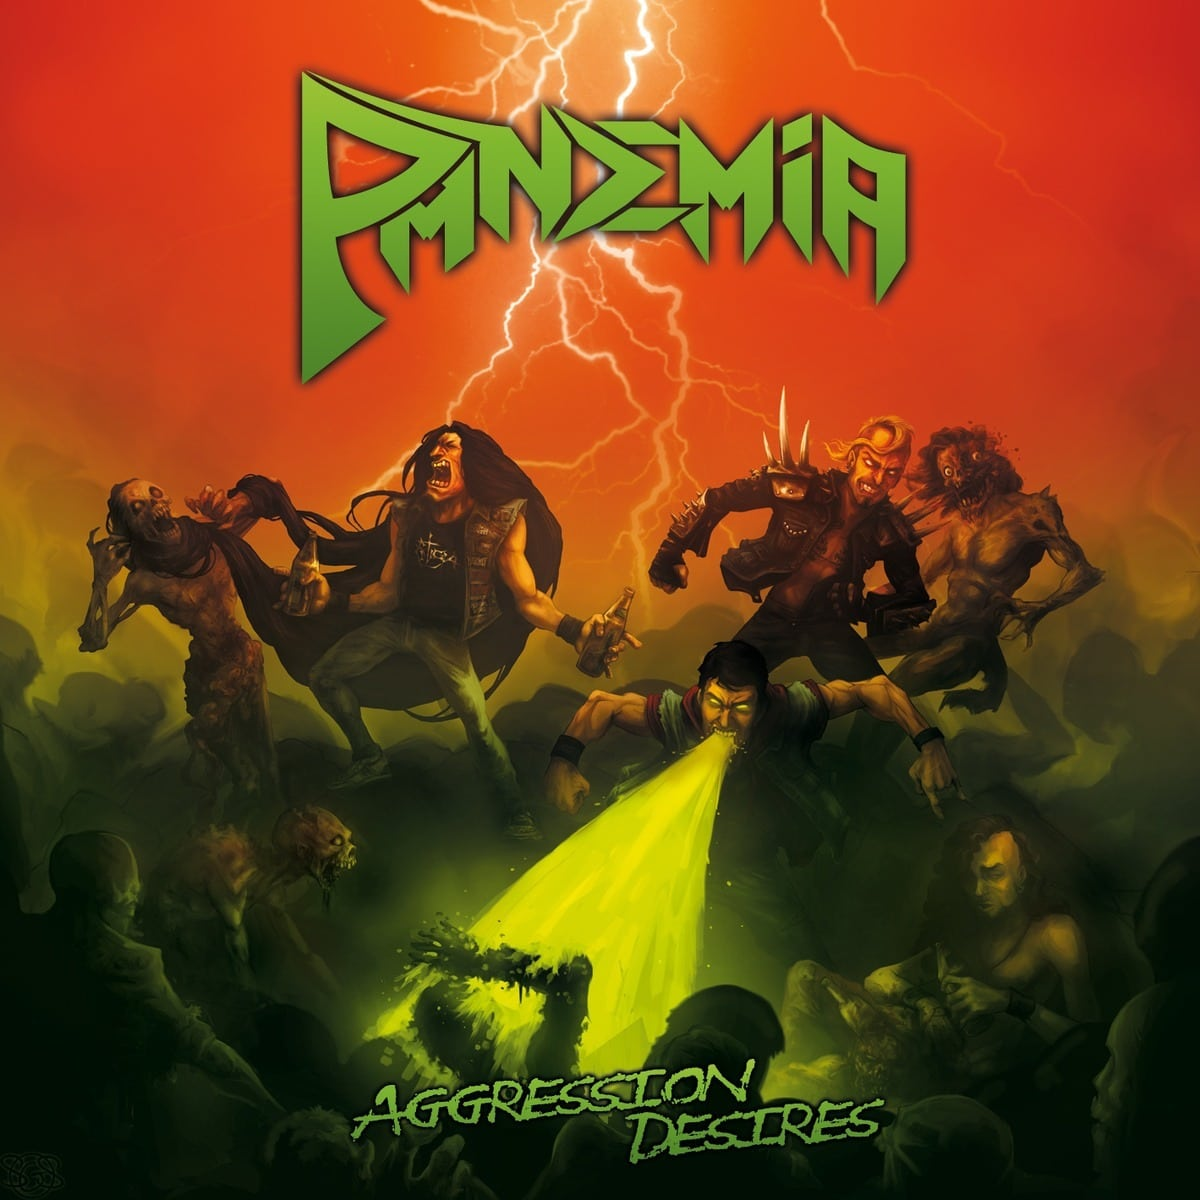 PANDEMIA – Aggression desires, 2015